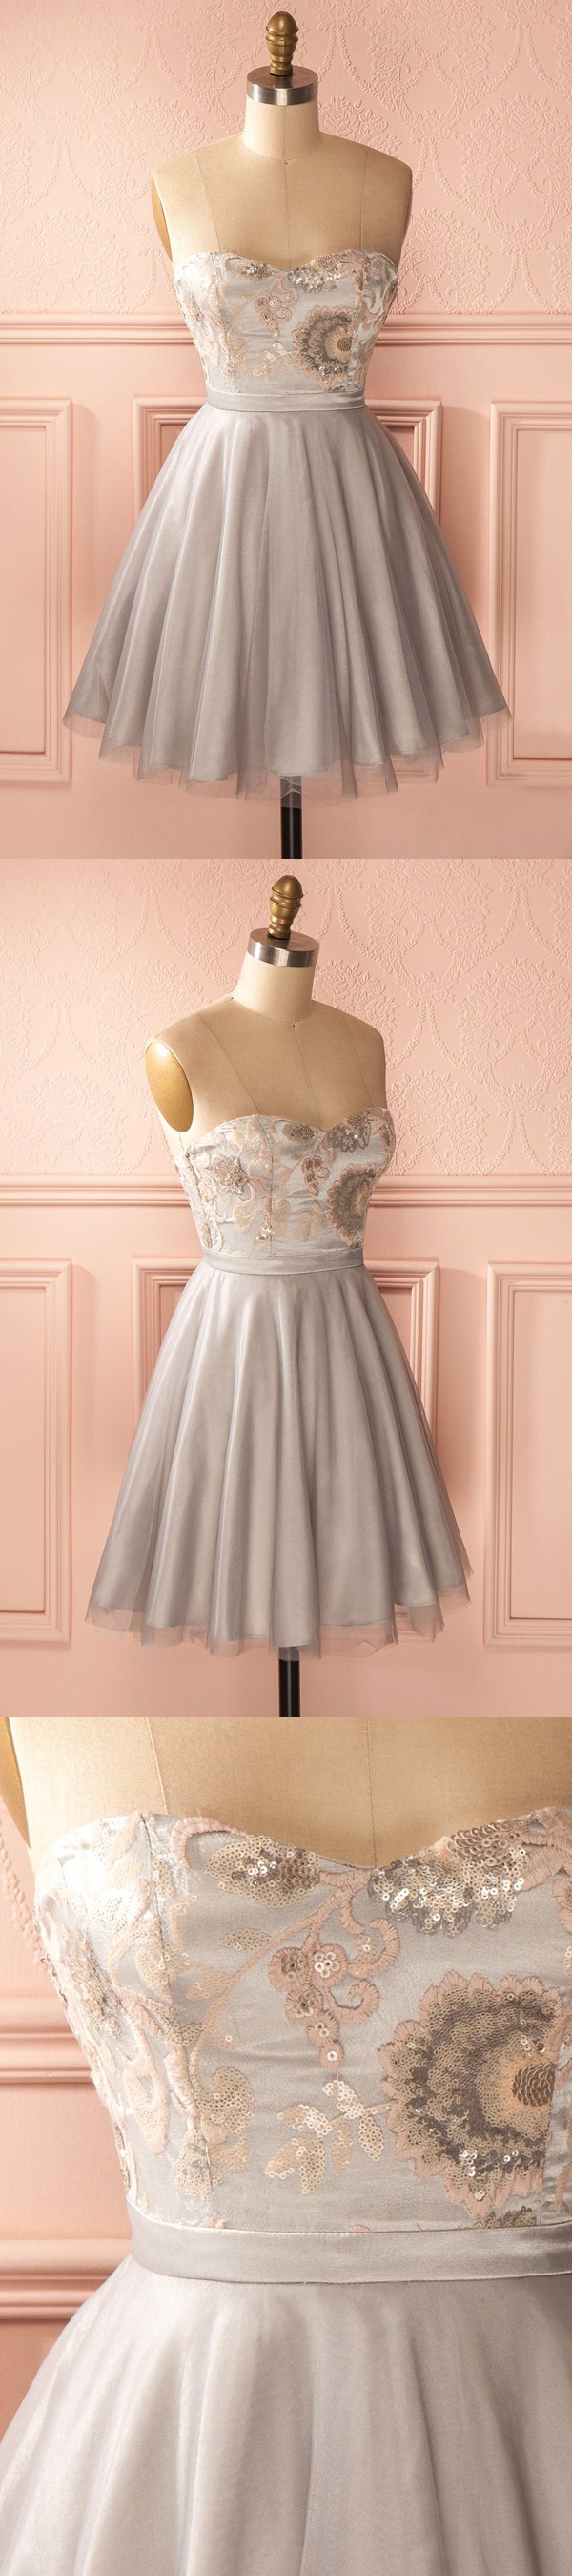 Aline sweetheart short grey tulle homecoming dress with embroidery